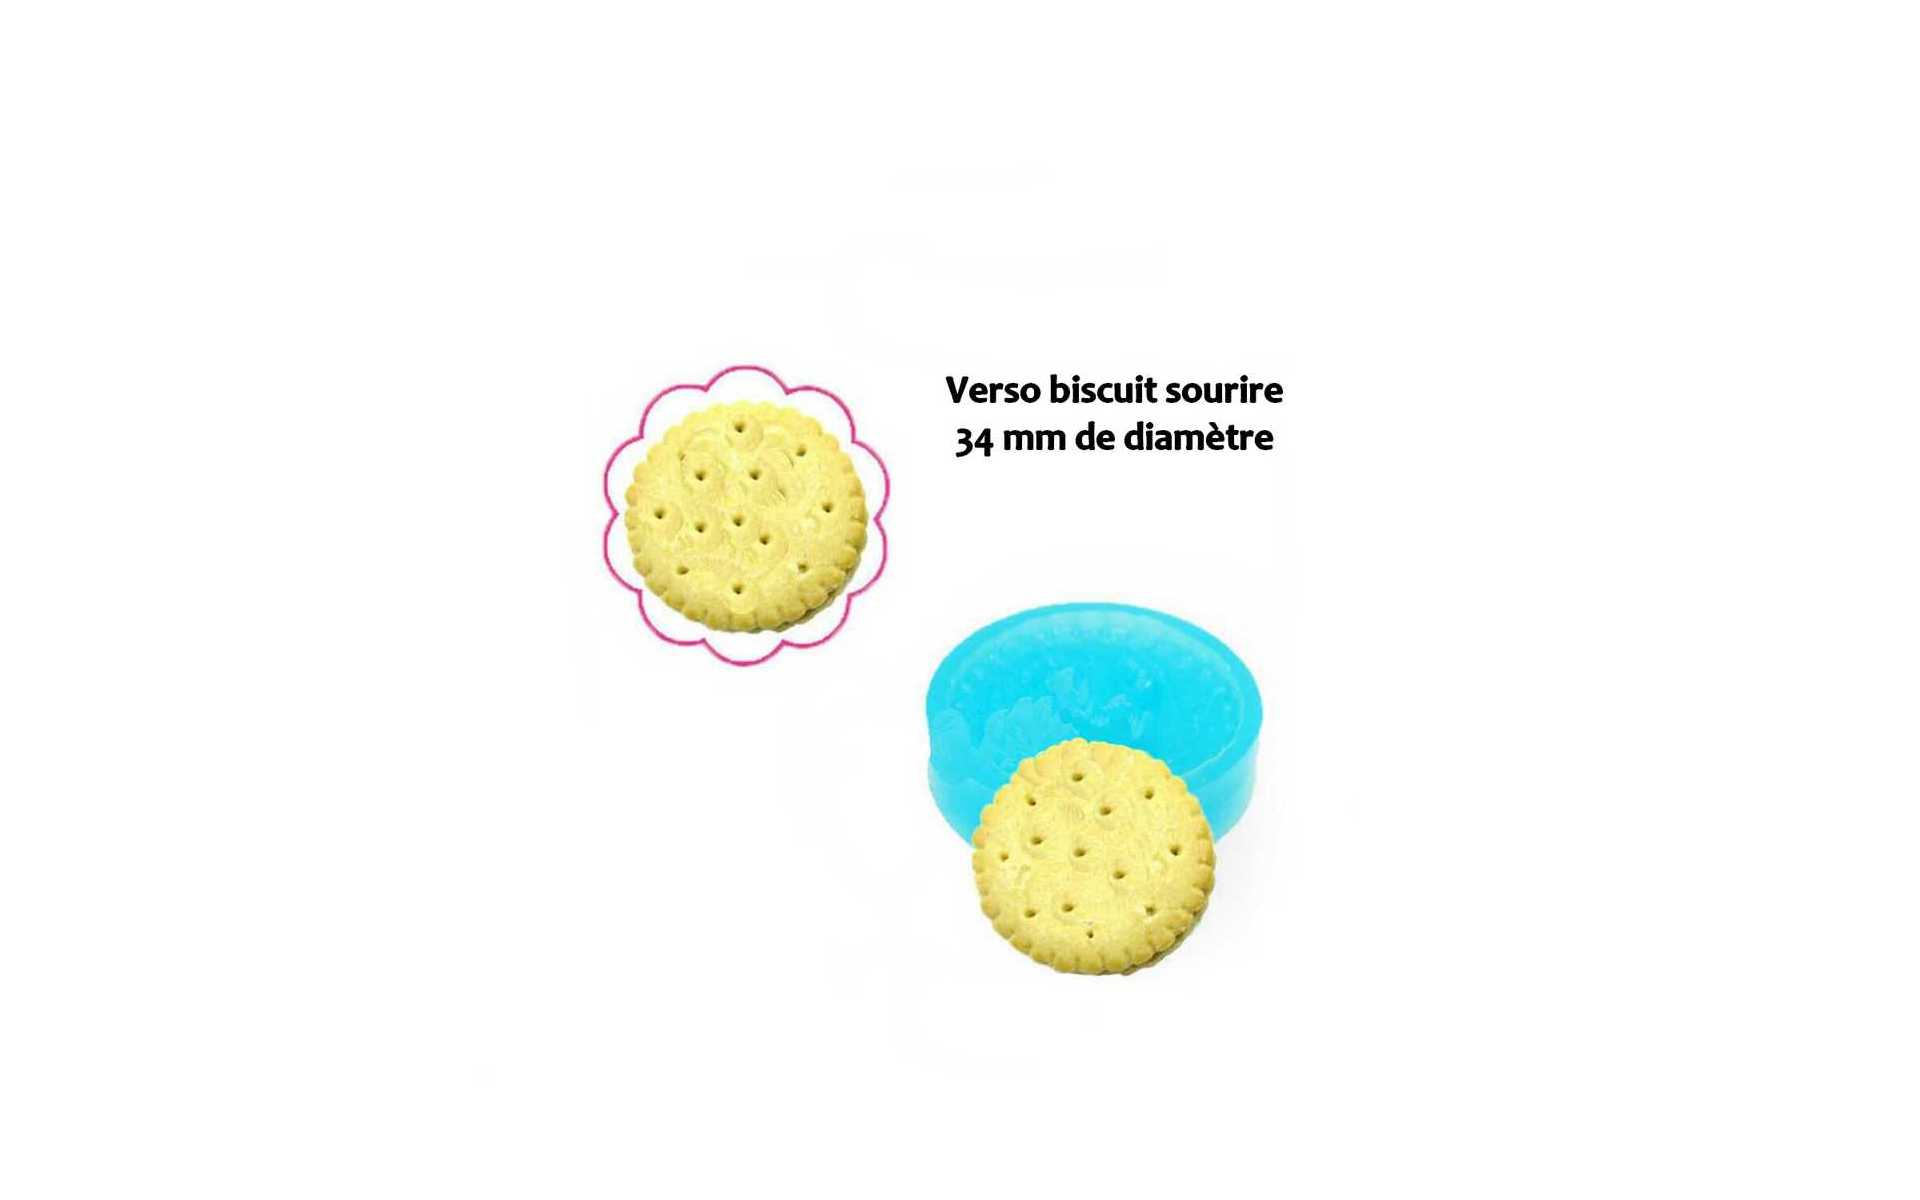 Moule silicone Biscuit sourire verso 34 mm